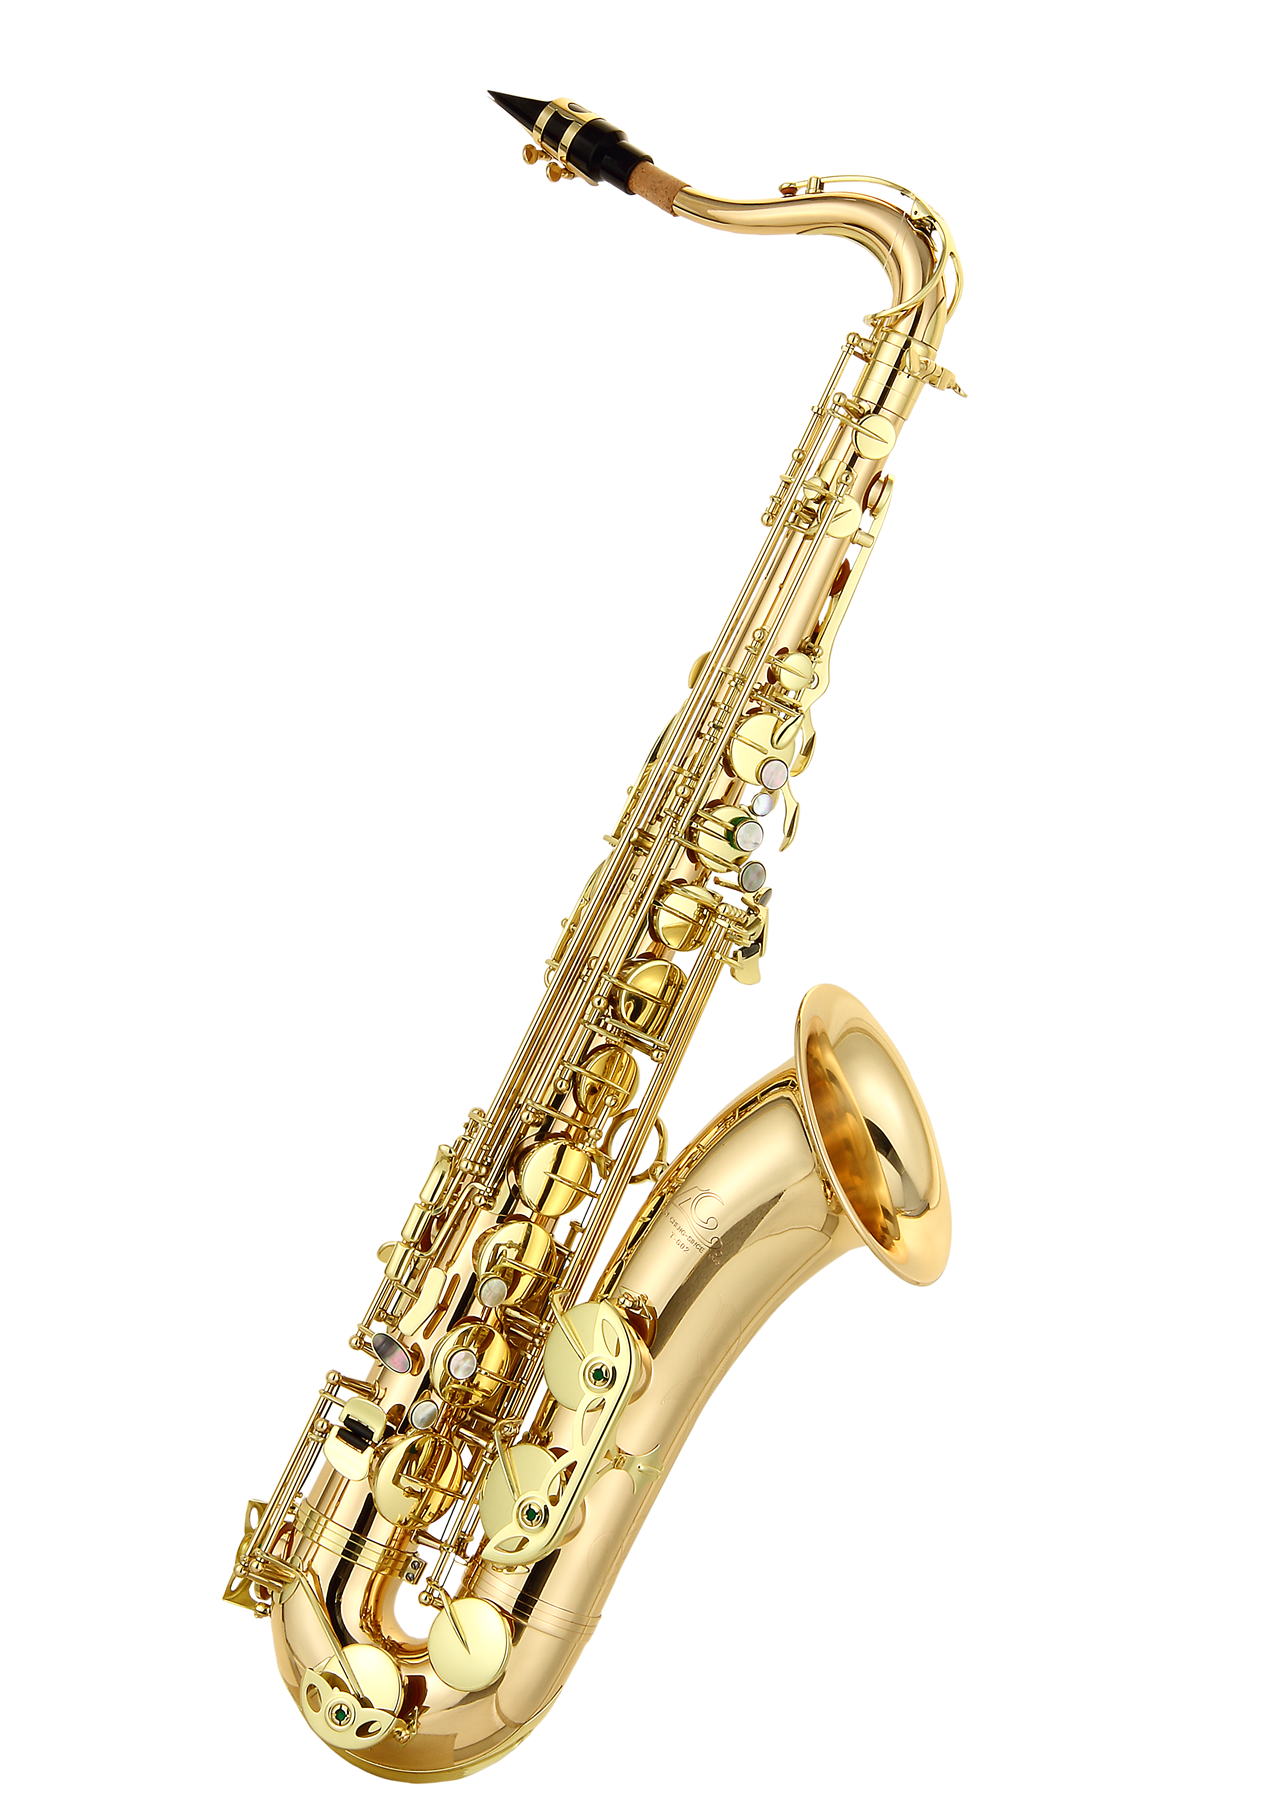 download saxophone png clipart hq png image freepngimg grasshopper clipart black and white only grasshopper clip art green